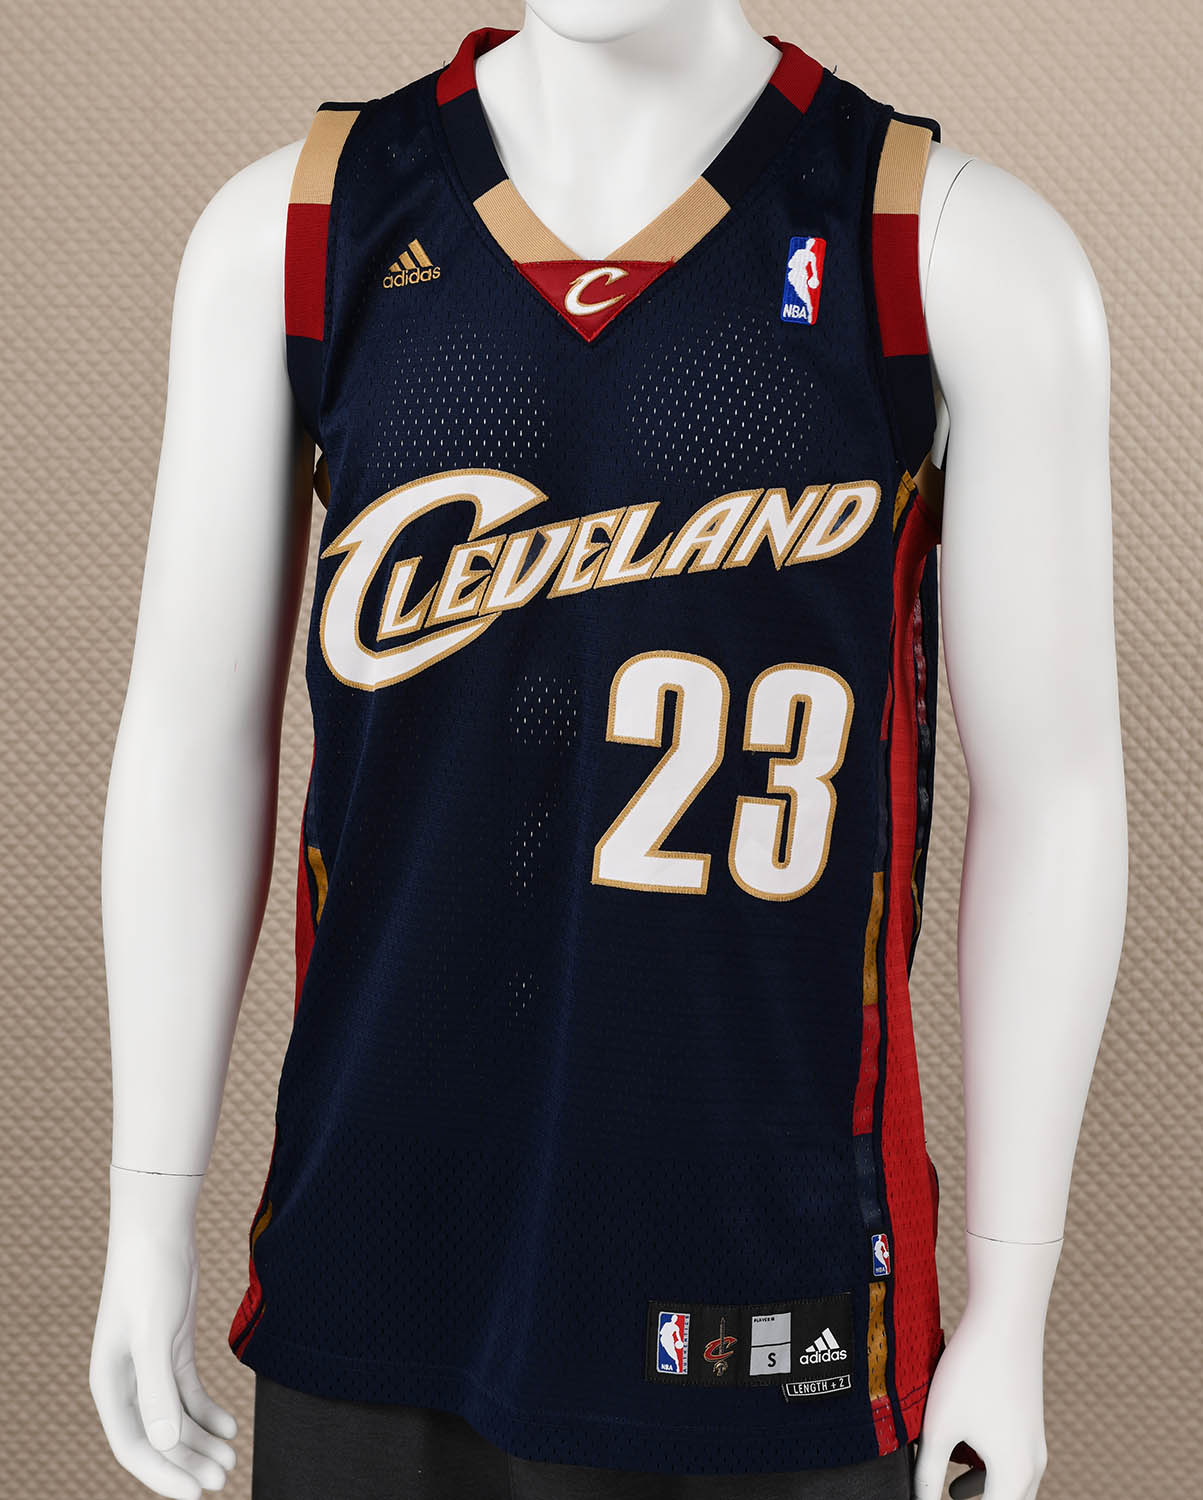 sale retailer bf375 ead52 cleveland cavs lebron jersey